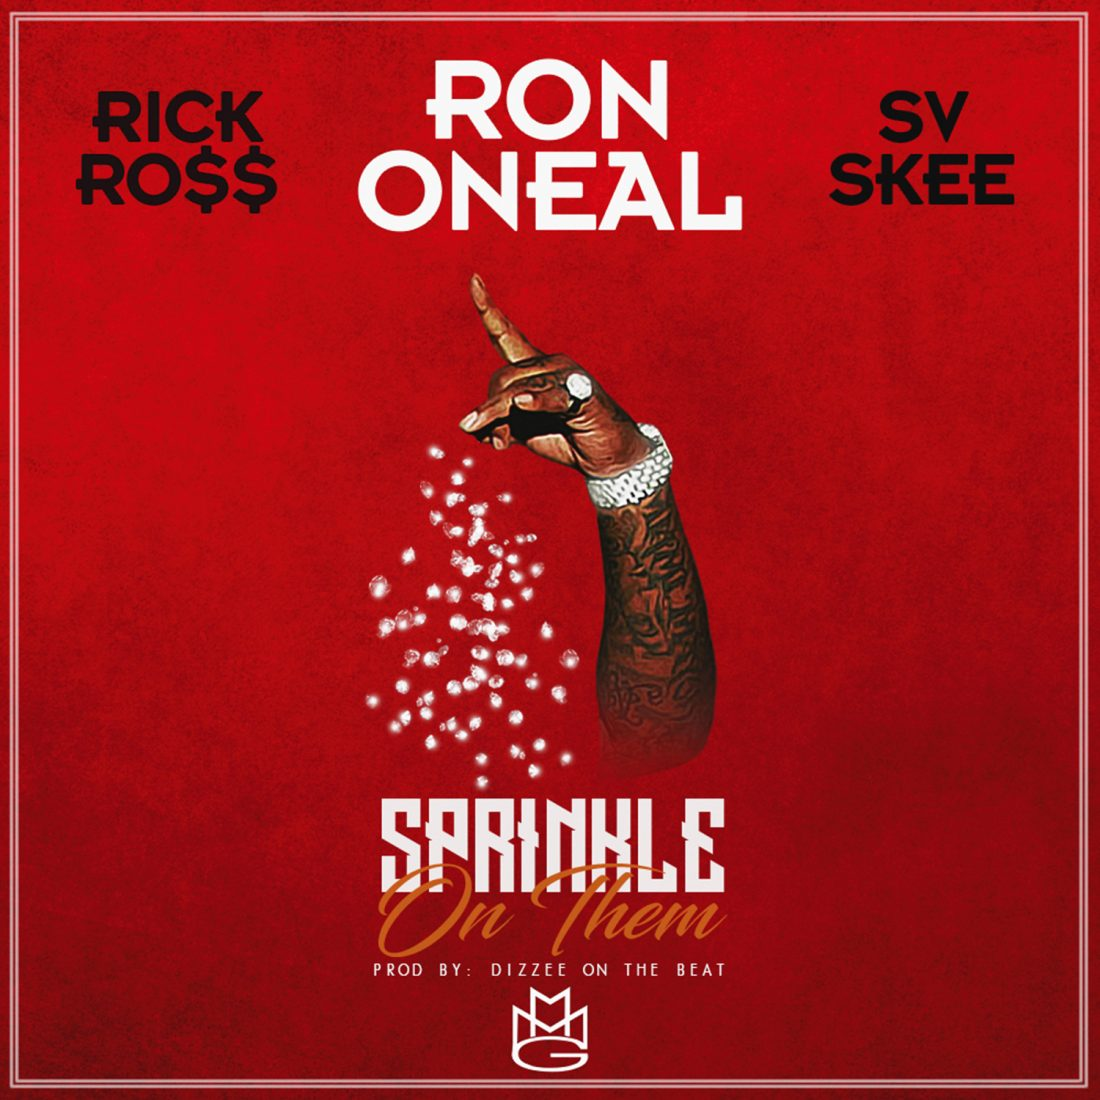 Ron Oneal Featuring Rick Ross: 'Sprinkle On Them'